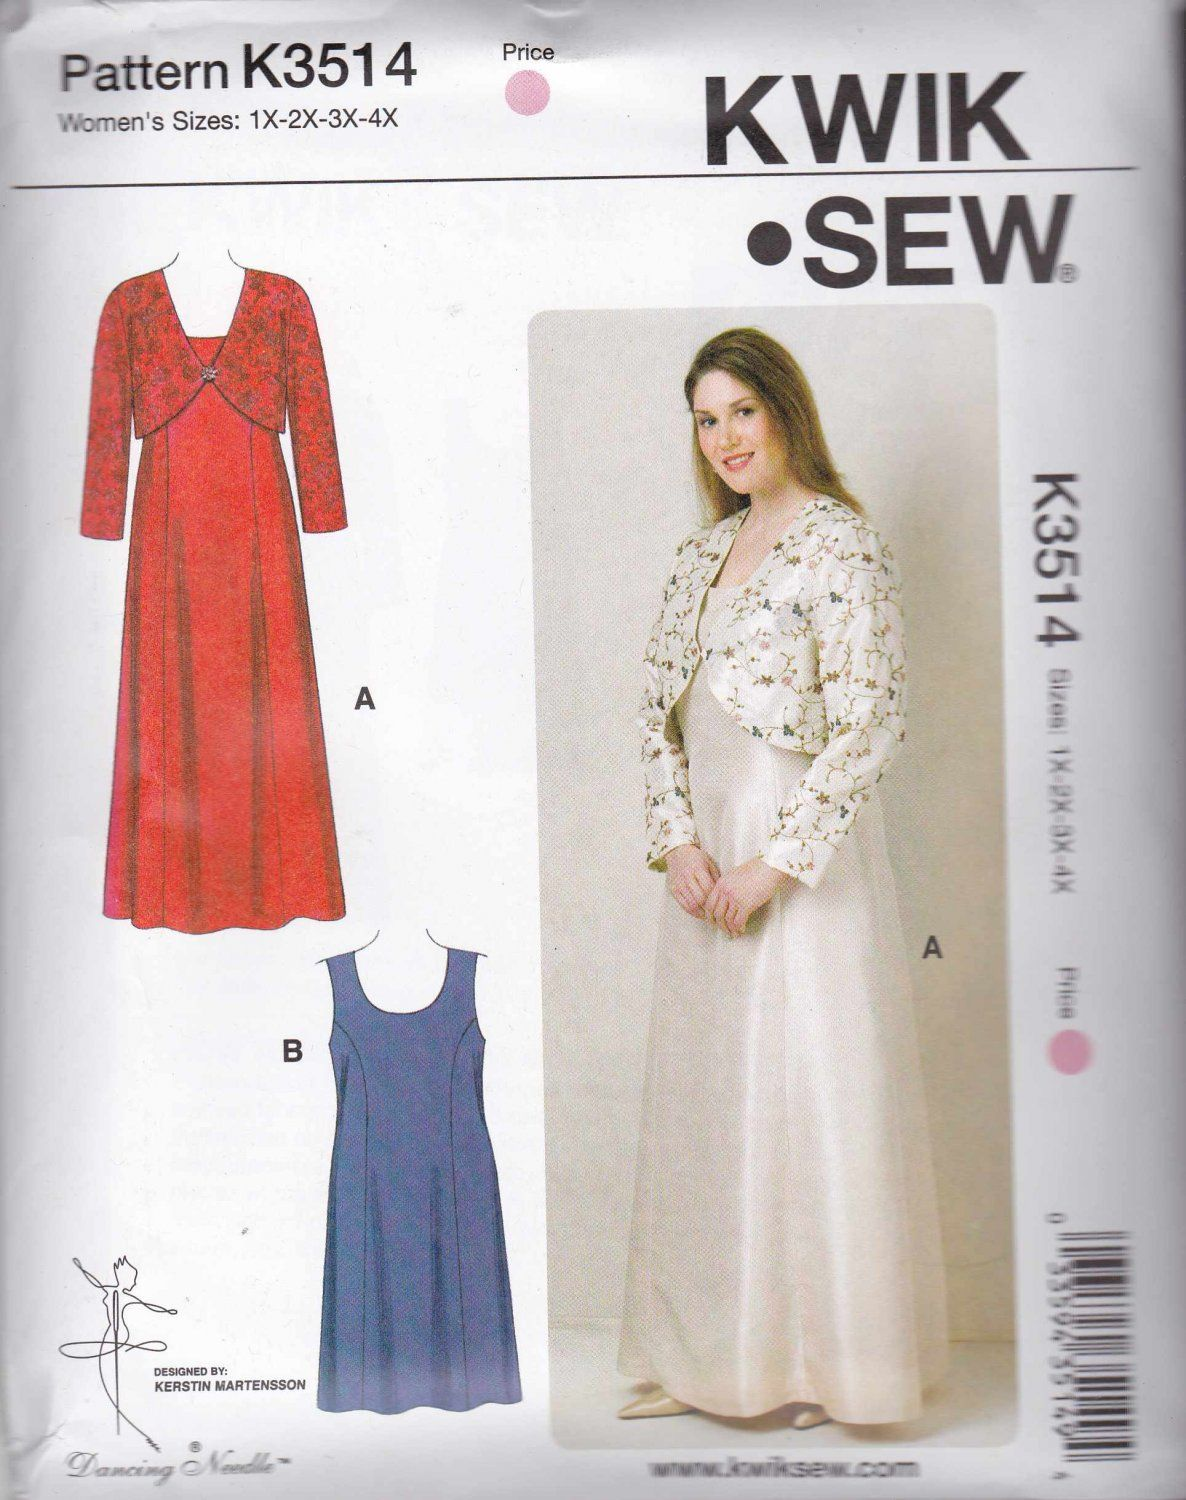 Kwik Sew Sewing Pattern 3514 Women\'s Plus Sizes 1X-4X Dresses Bolero ...